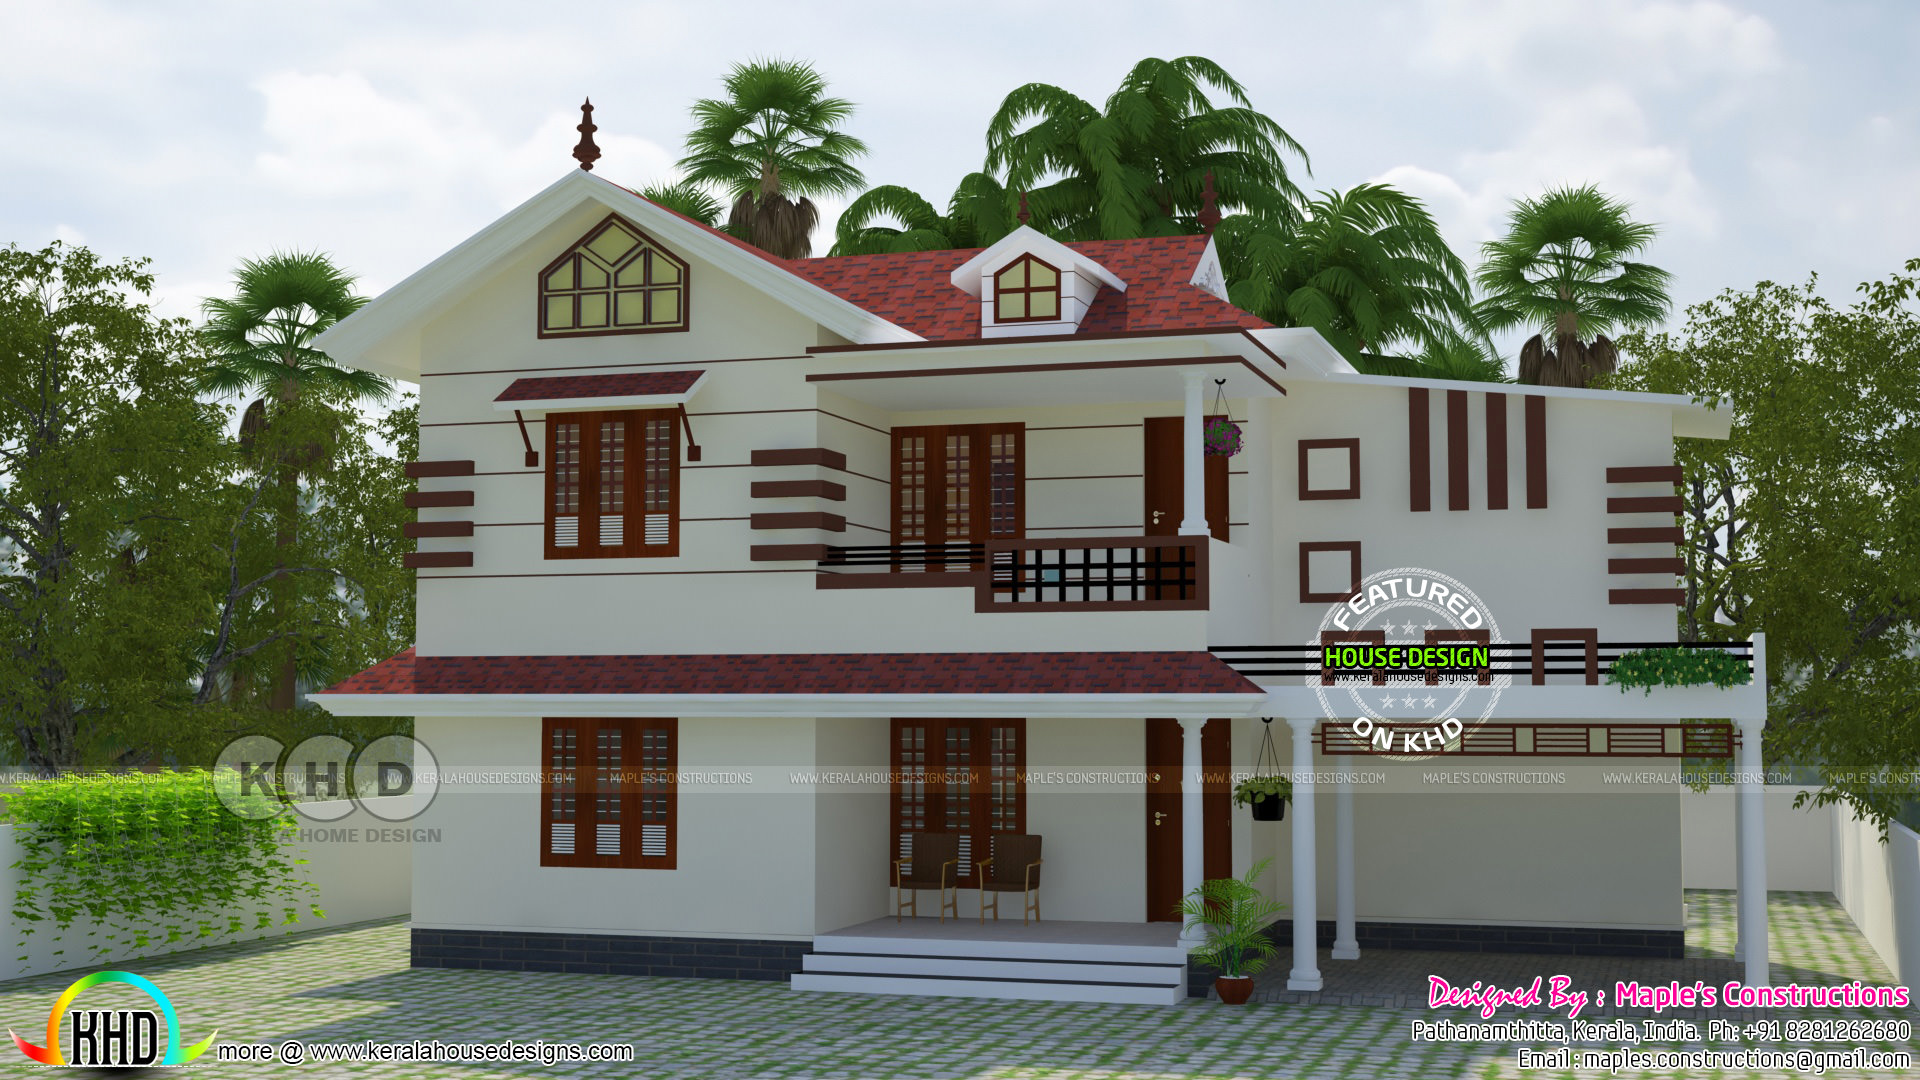 1841 square feet modern kerala style home modern kerala model house